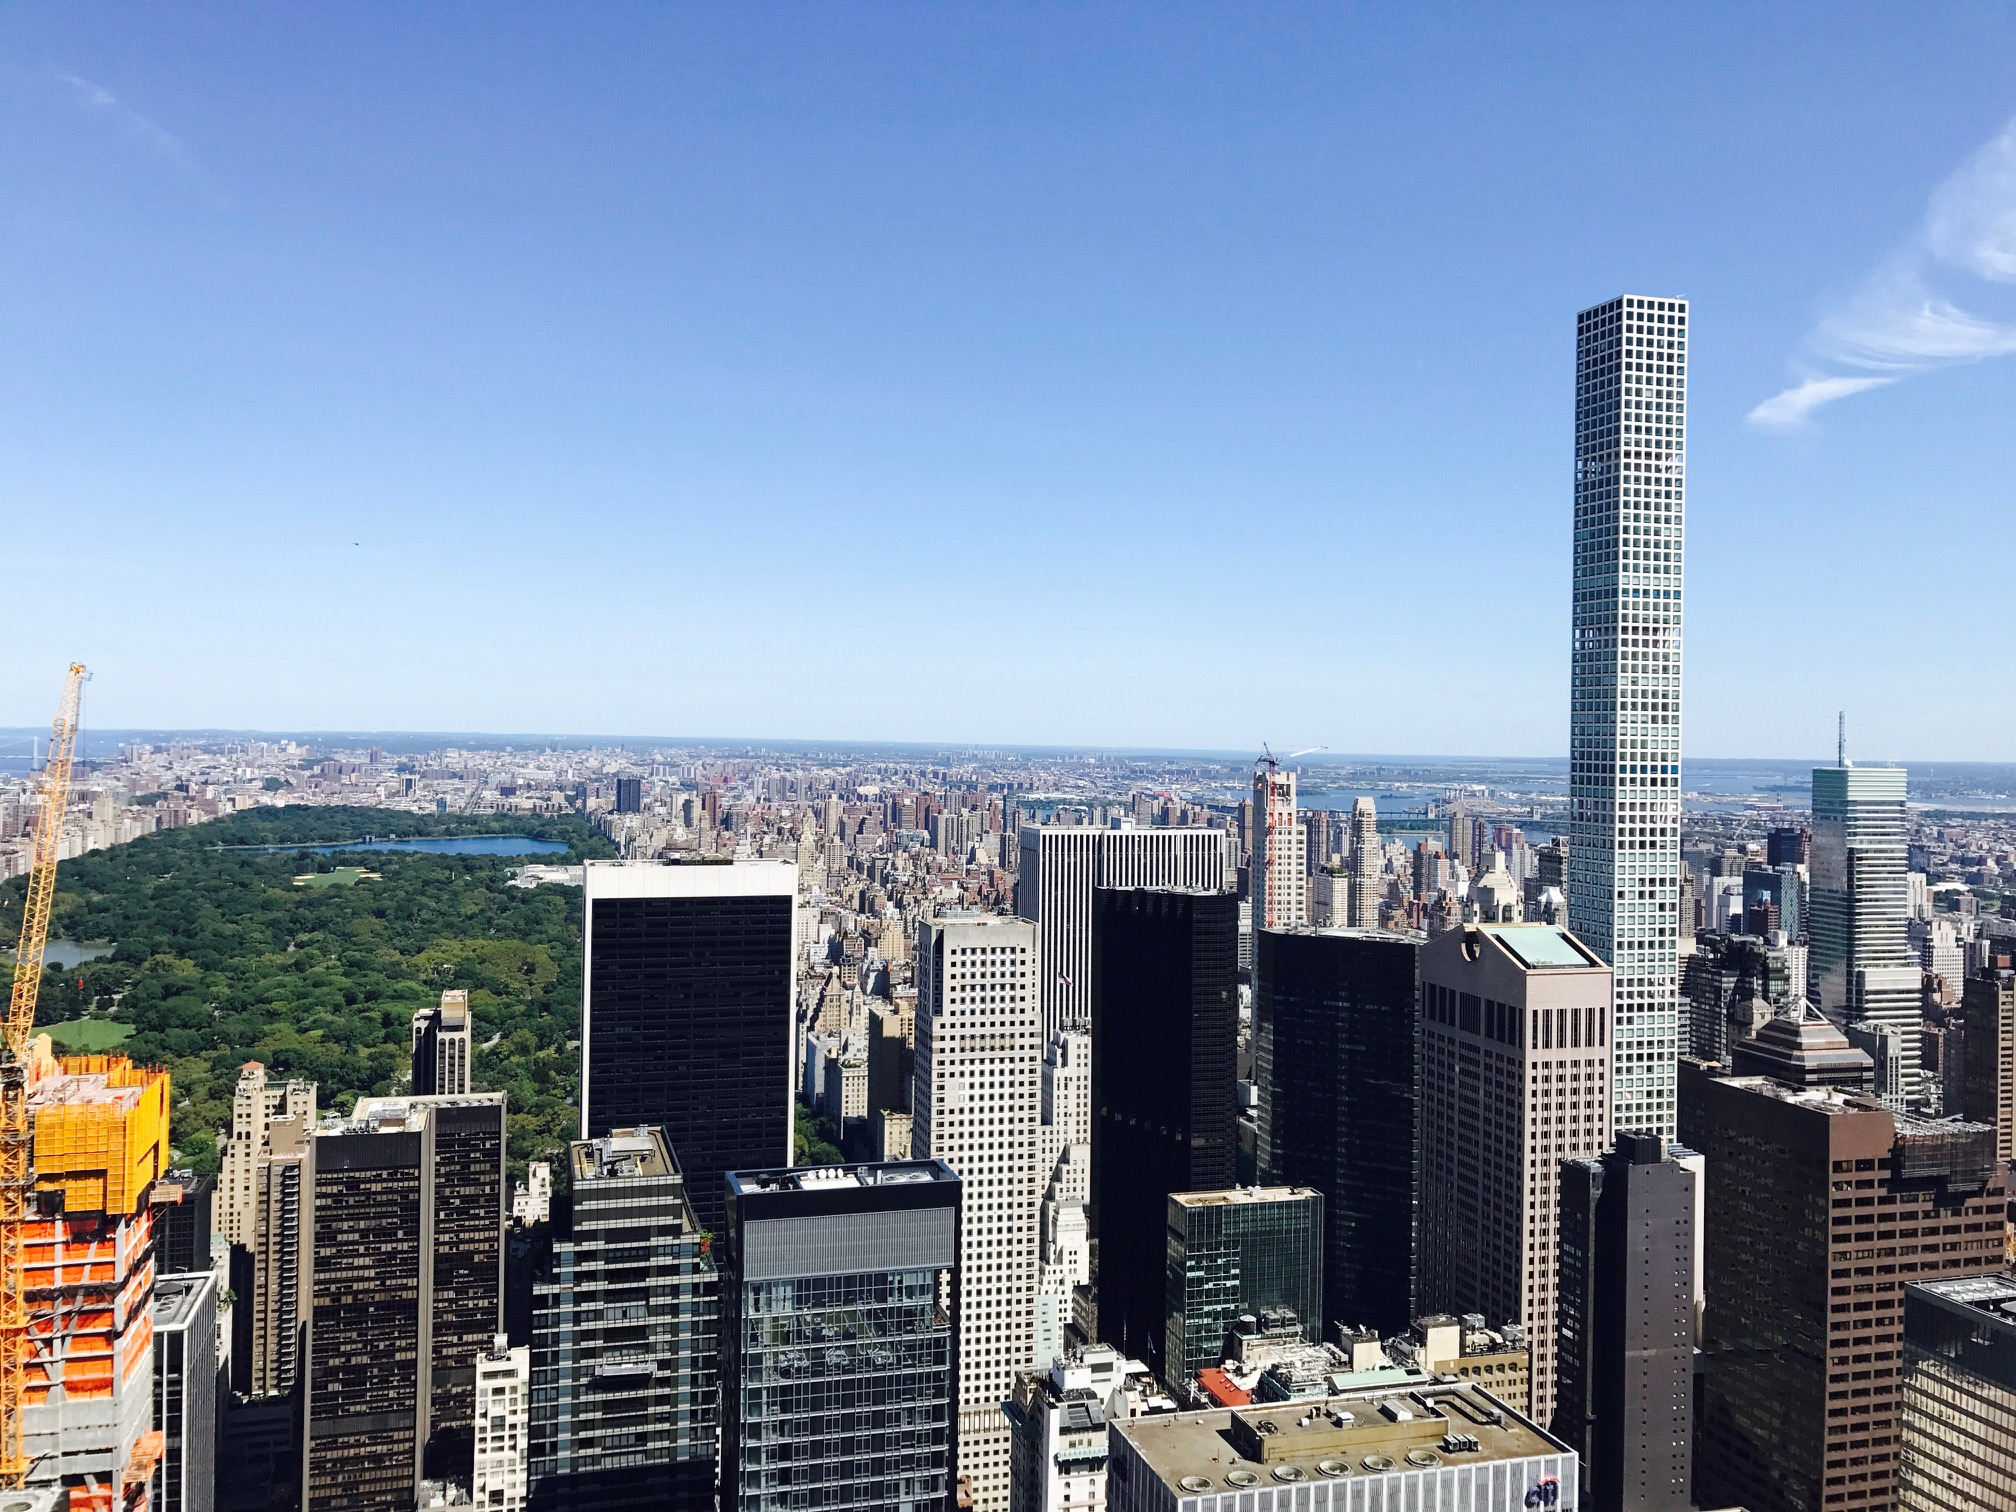 The amazing view from The Top of the Rock